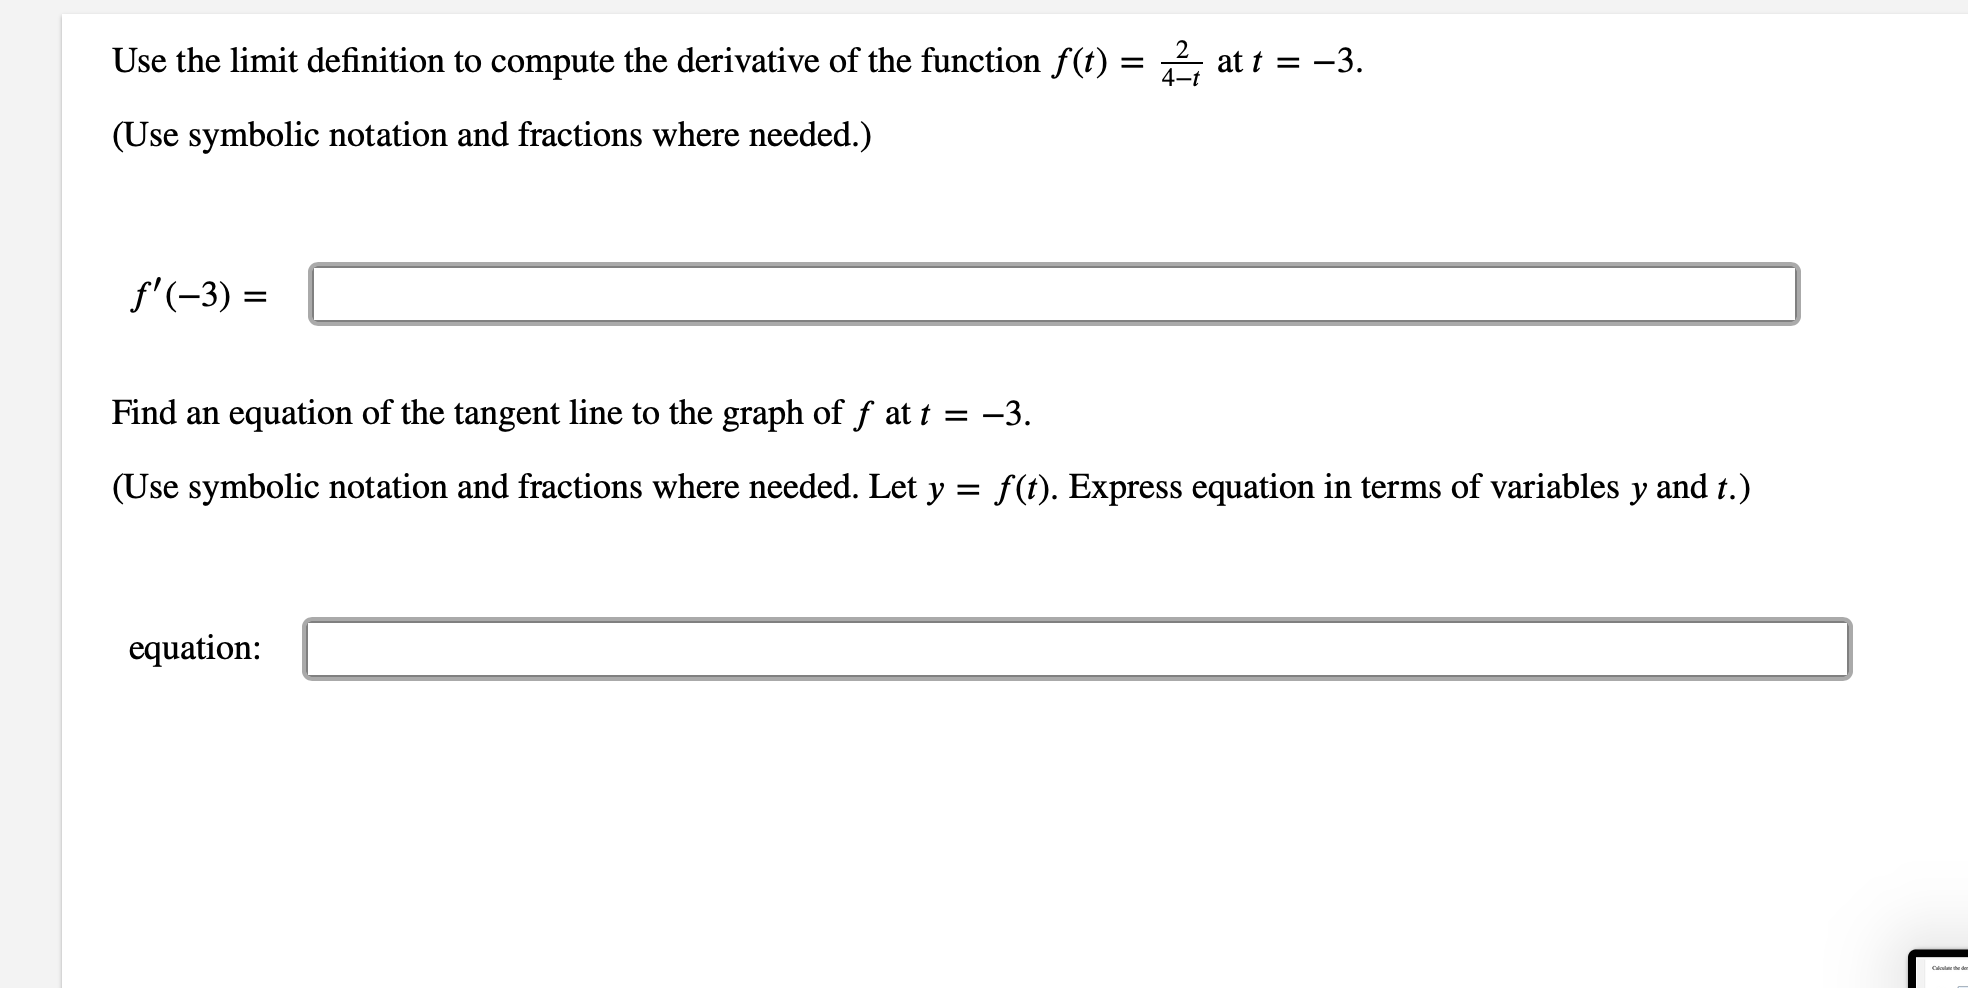 Use the limit definition to compute the derivative of the function f(t) = ^ at t = -3 4-t (Use symbolic notation and fractions where needed.) f'(-3) Find an equation of the tangent line to the graph of f at t = -3. (Use symbolic notation and fractions where needed. Let y = f(t). Express equation in terms of variables y and t.) equation: